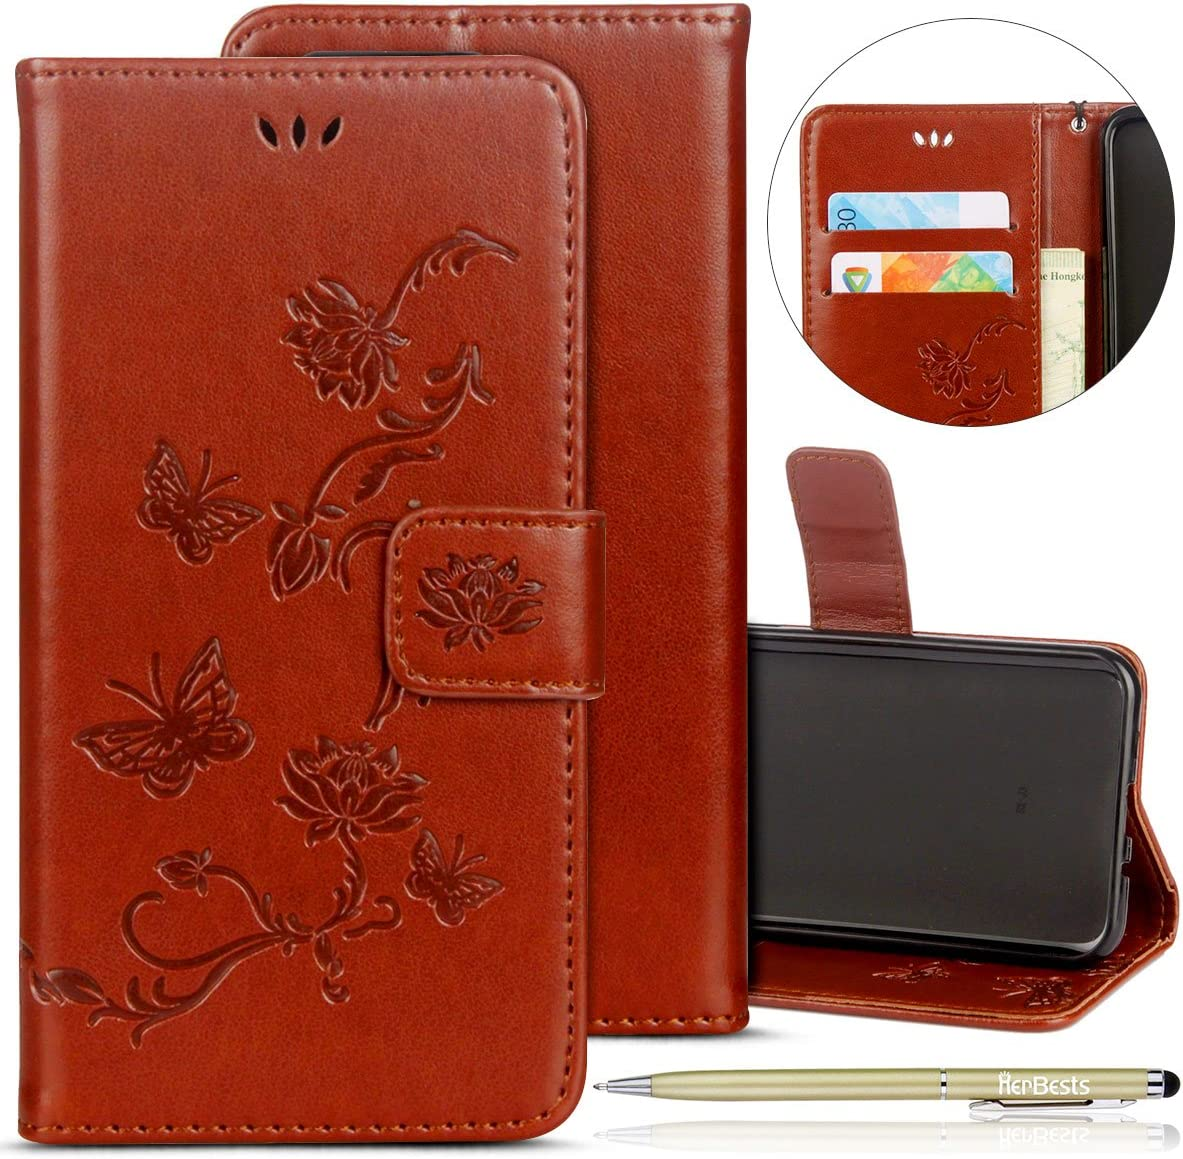 Herbests Compatible with Huawei P10 Wallet Case Embossed Lotus Flower Butterfly Pattern Leather Flip Stand Magnet Wallet Case Shockproof Soft TPU Bumper with Card Slots,Purple